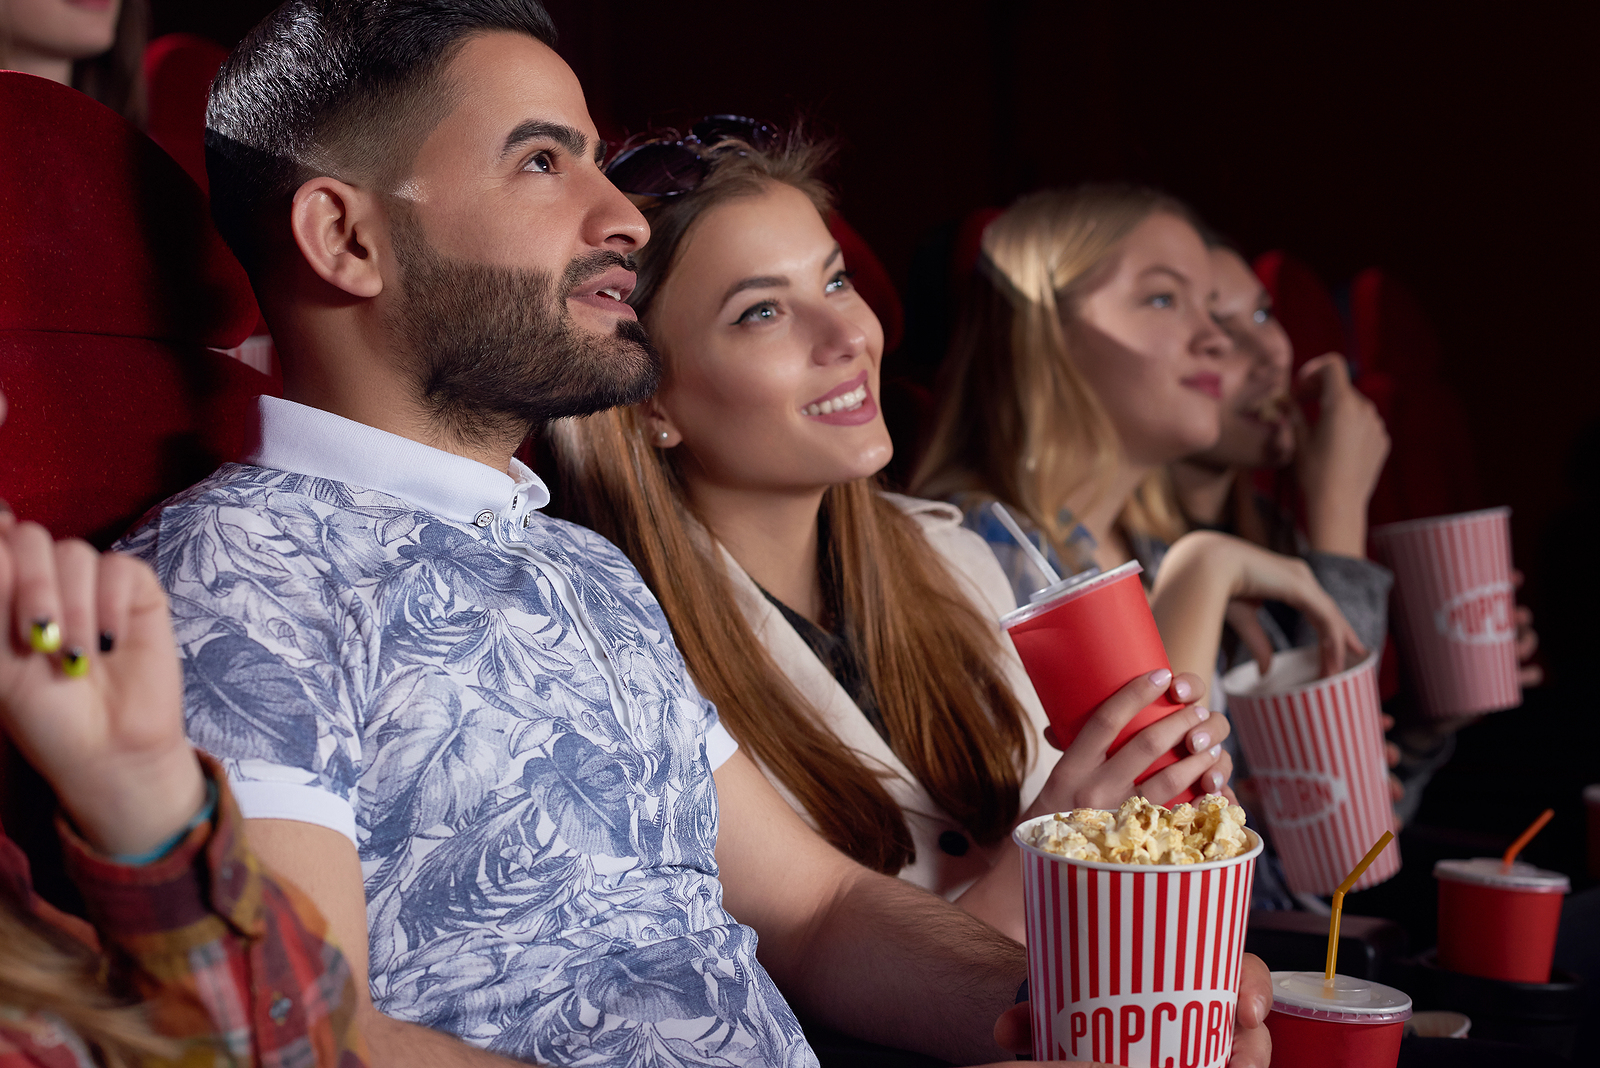 Couple watching a movie together smiling together with popcorn.